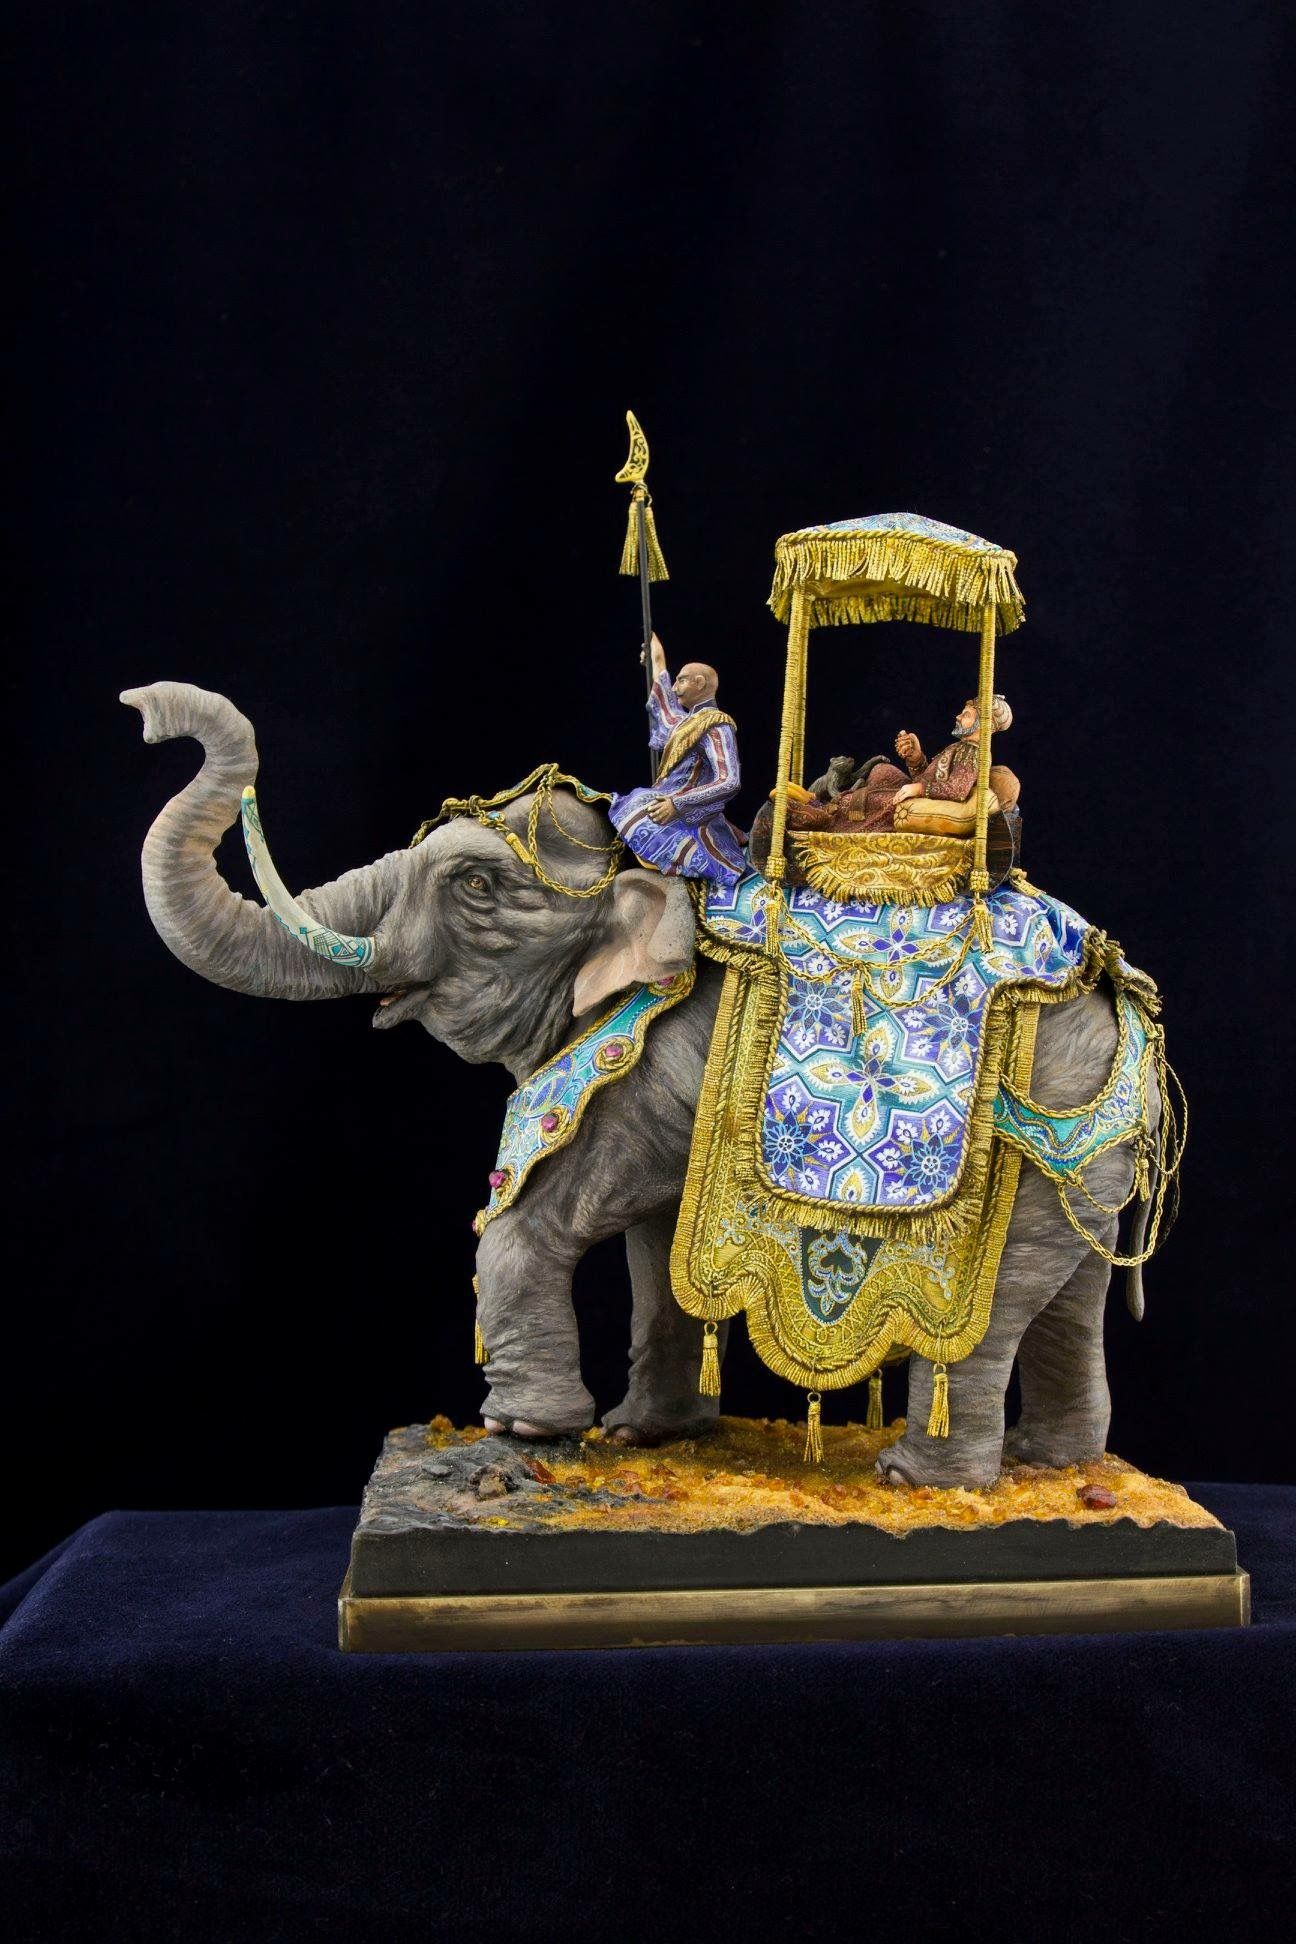 Pin By William Warren On AMAZING Painted Figures In 2019